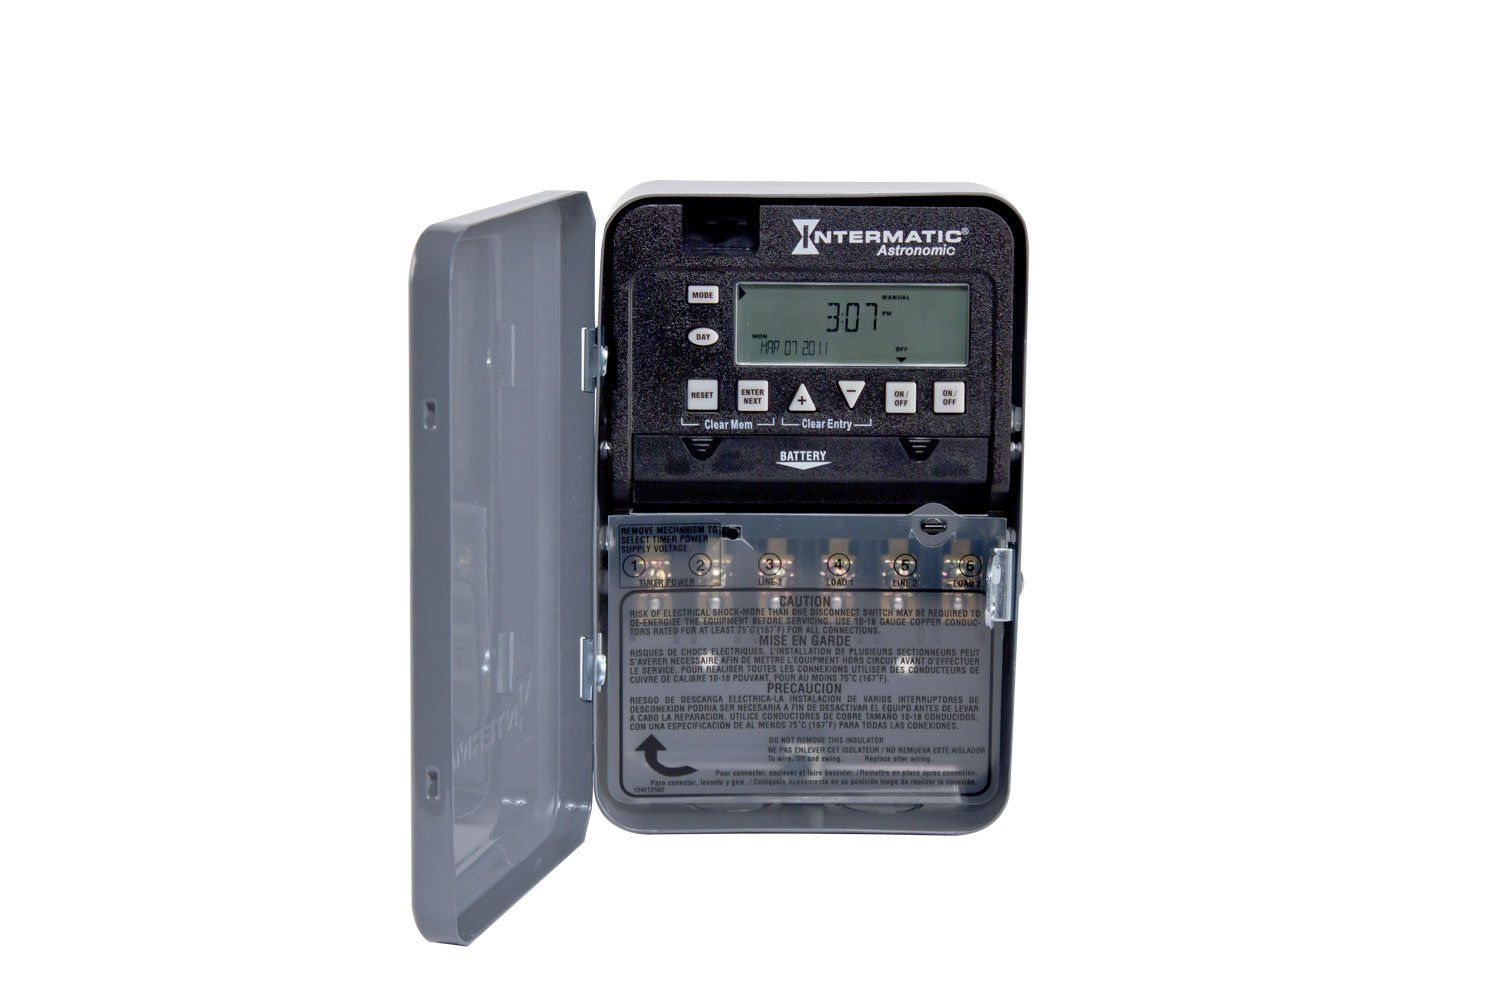 Intermatic ET8215C 7-Day 30-Amps 2XSPST OR DPST Electronic Astronomic Time Switch, Clock Voltage 120-Volt - 277-Volt NEMA 1 by Intermatic